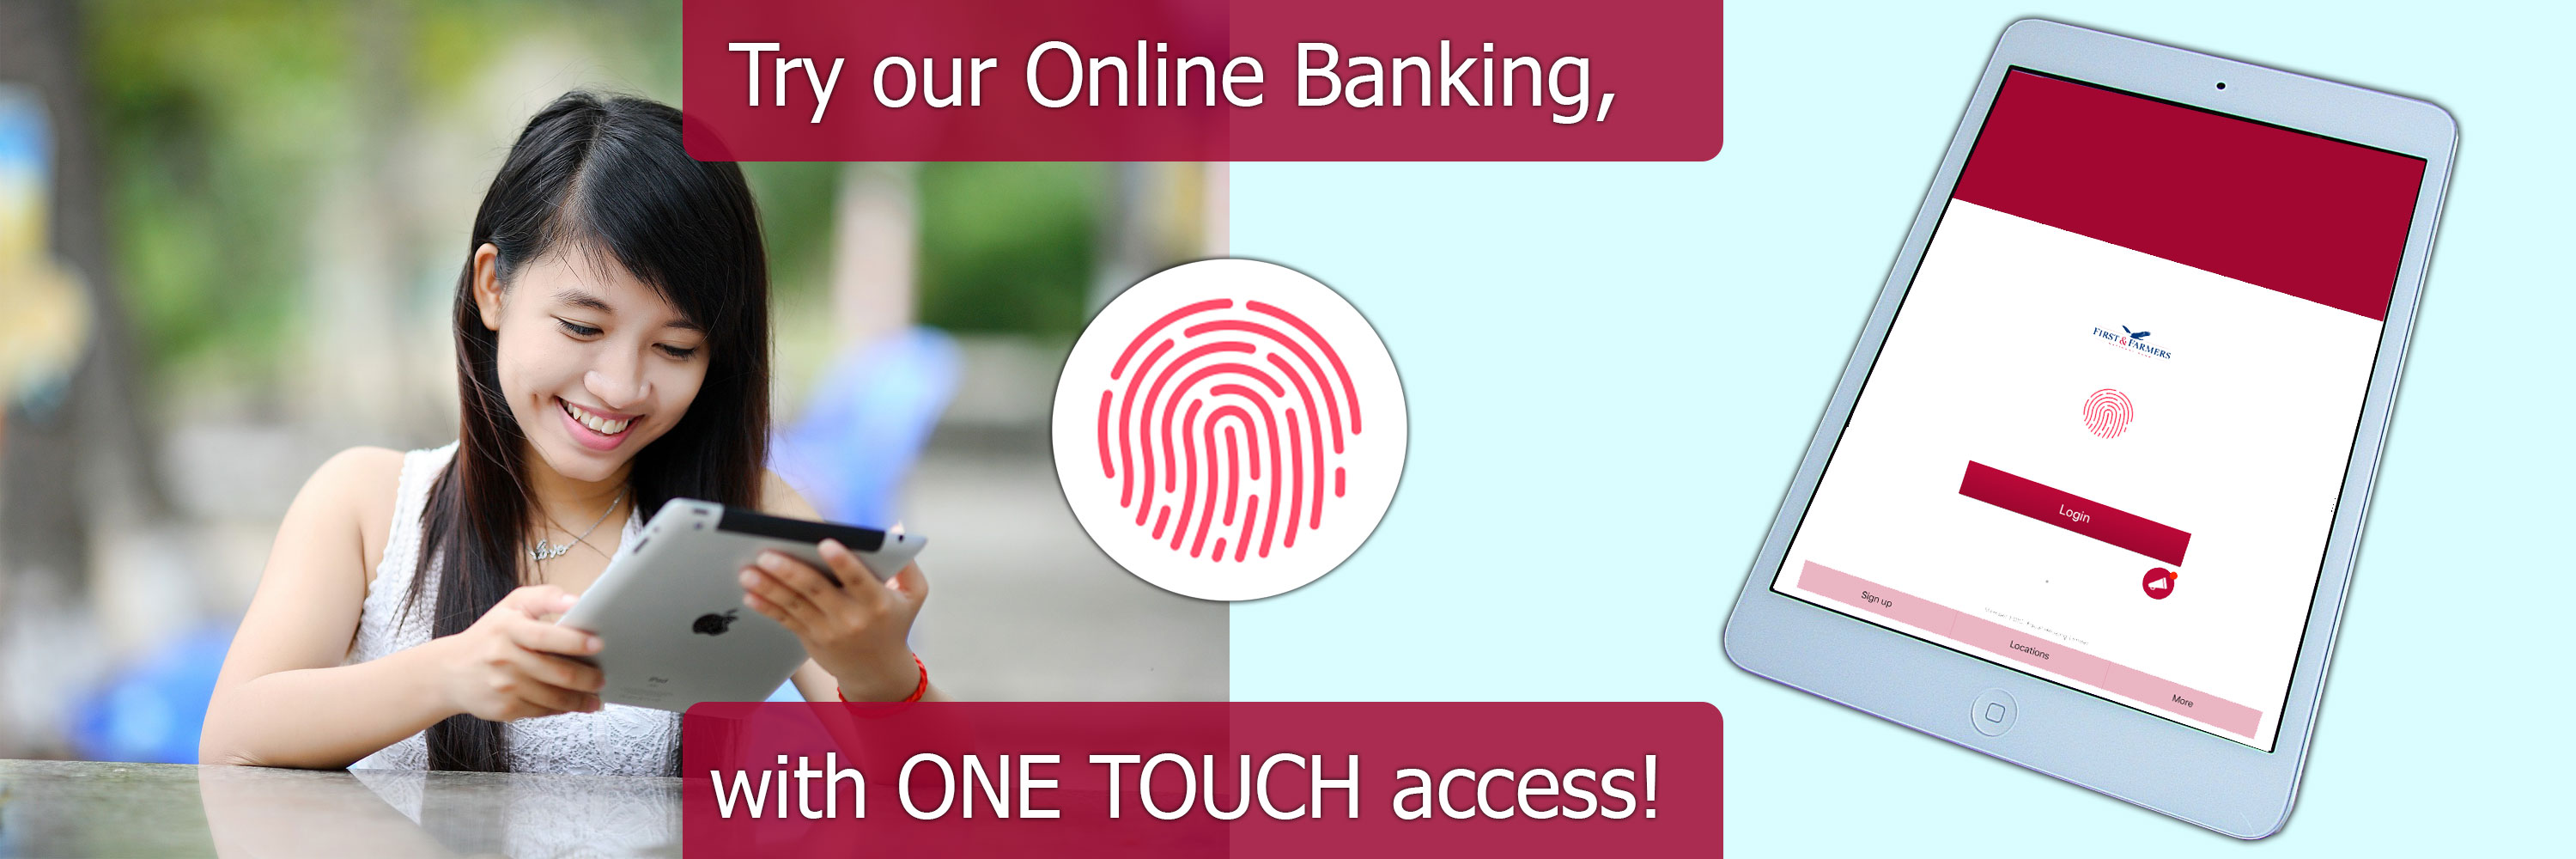 Try our Online Banking with one touch access! Click here!